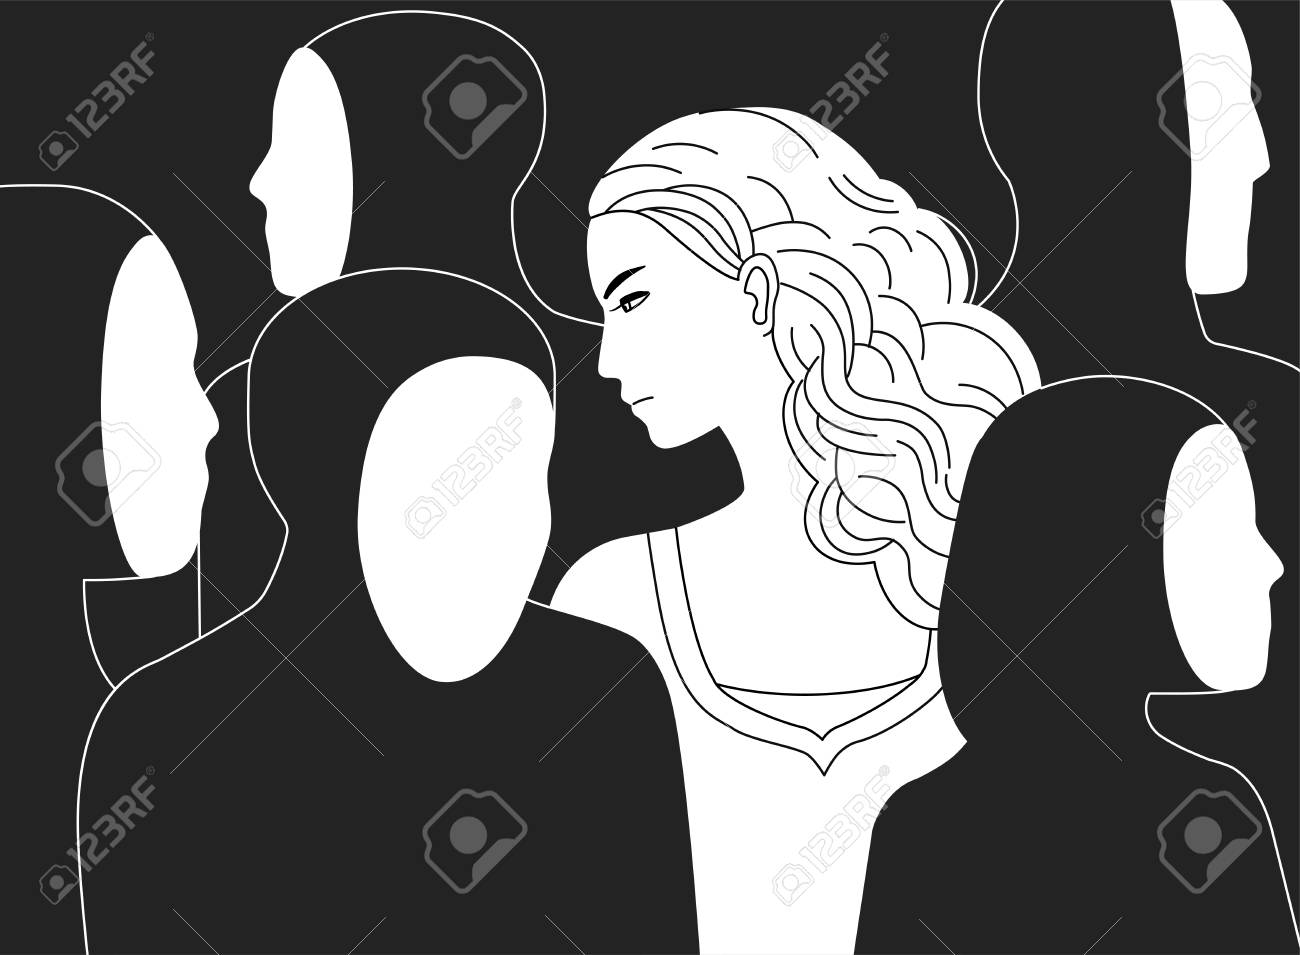 Beautiful sad long-haired woman surrounded by black silhouettes of people without faces. Concept of loneliness in crowd, alienation, estrangement, indifference. Monochrome vector illustration. - 89855537